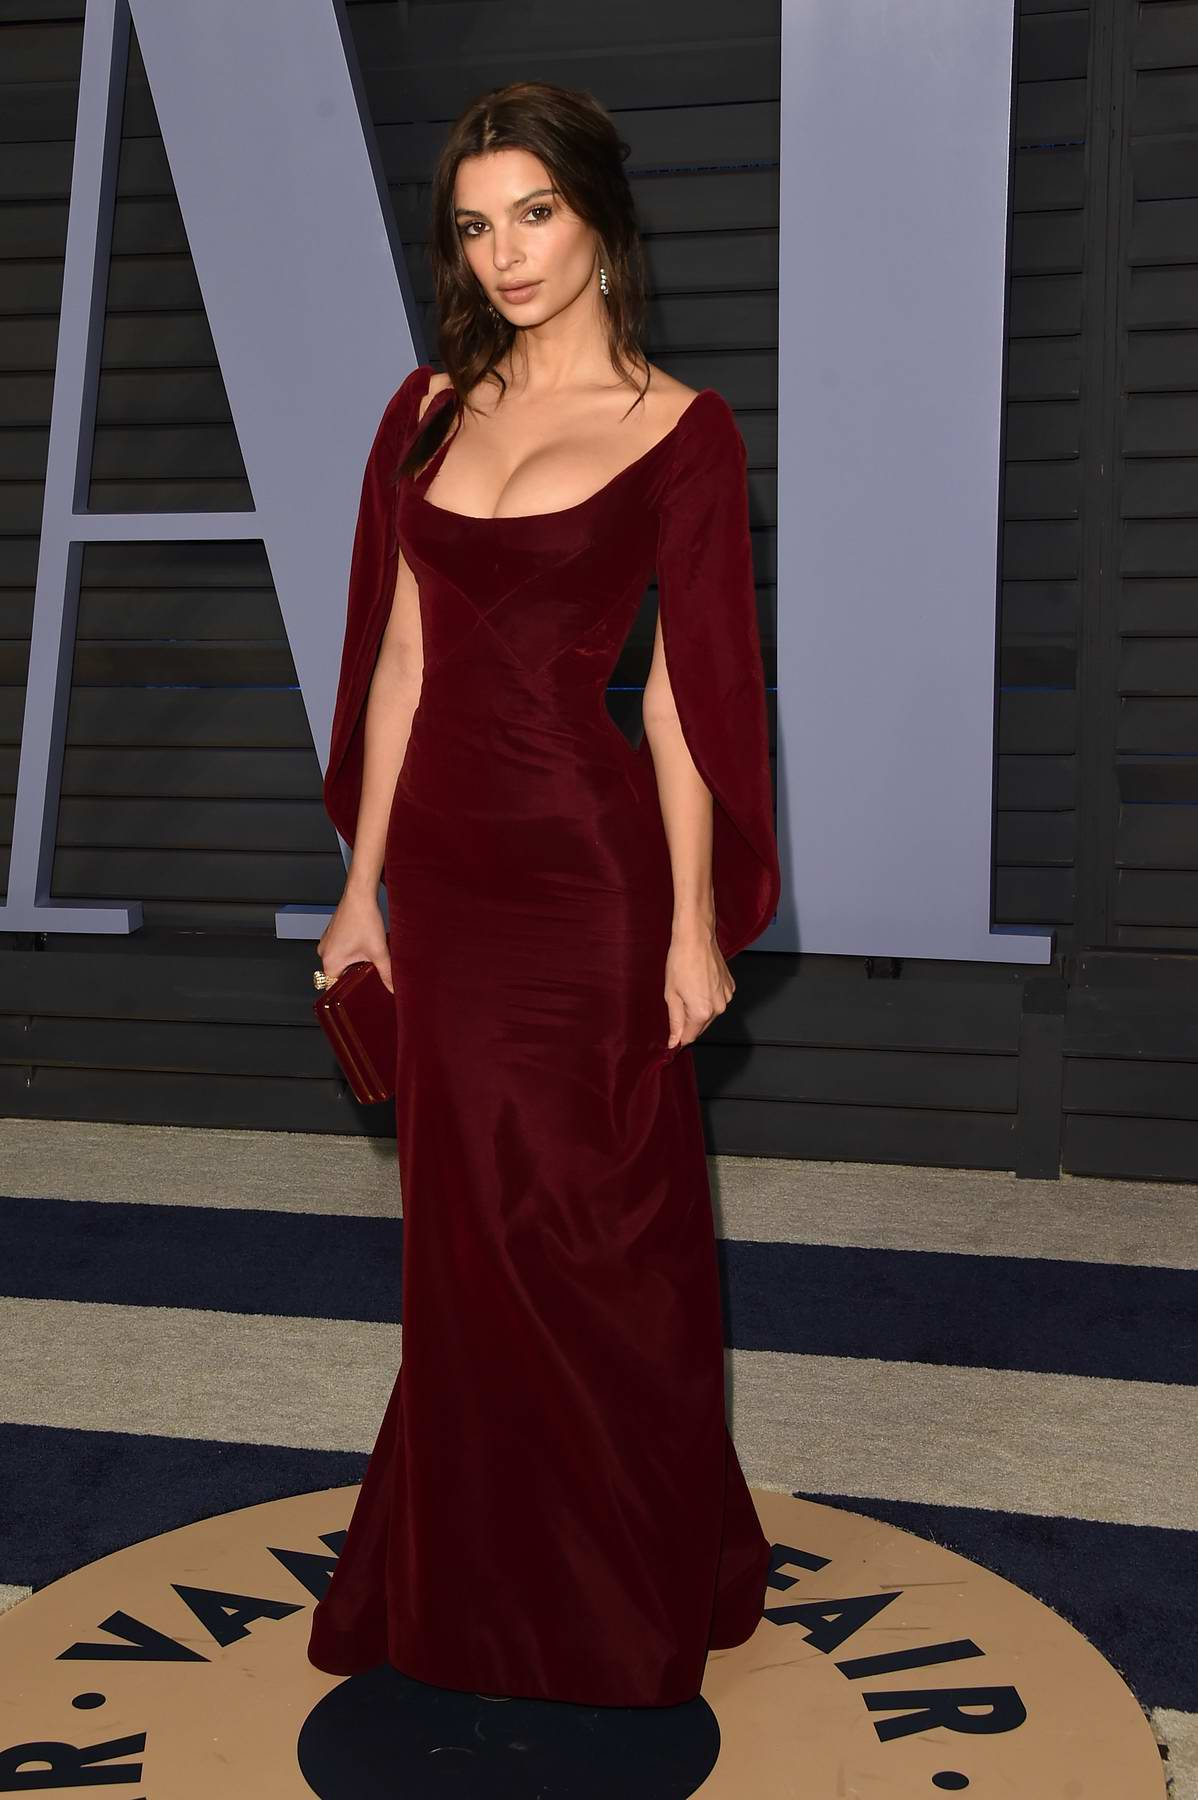 Emily Ratajkowski attends 2018 Vanity Fair Oscar Party at the Wallis Annenberg Center for the Performing Arts in Beverly Hills, Los Angeles